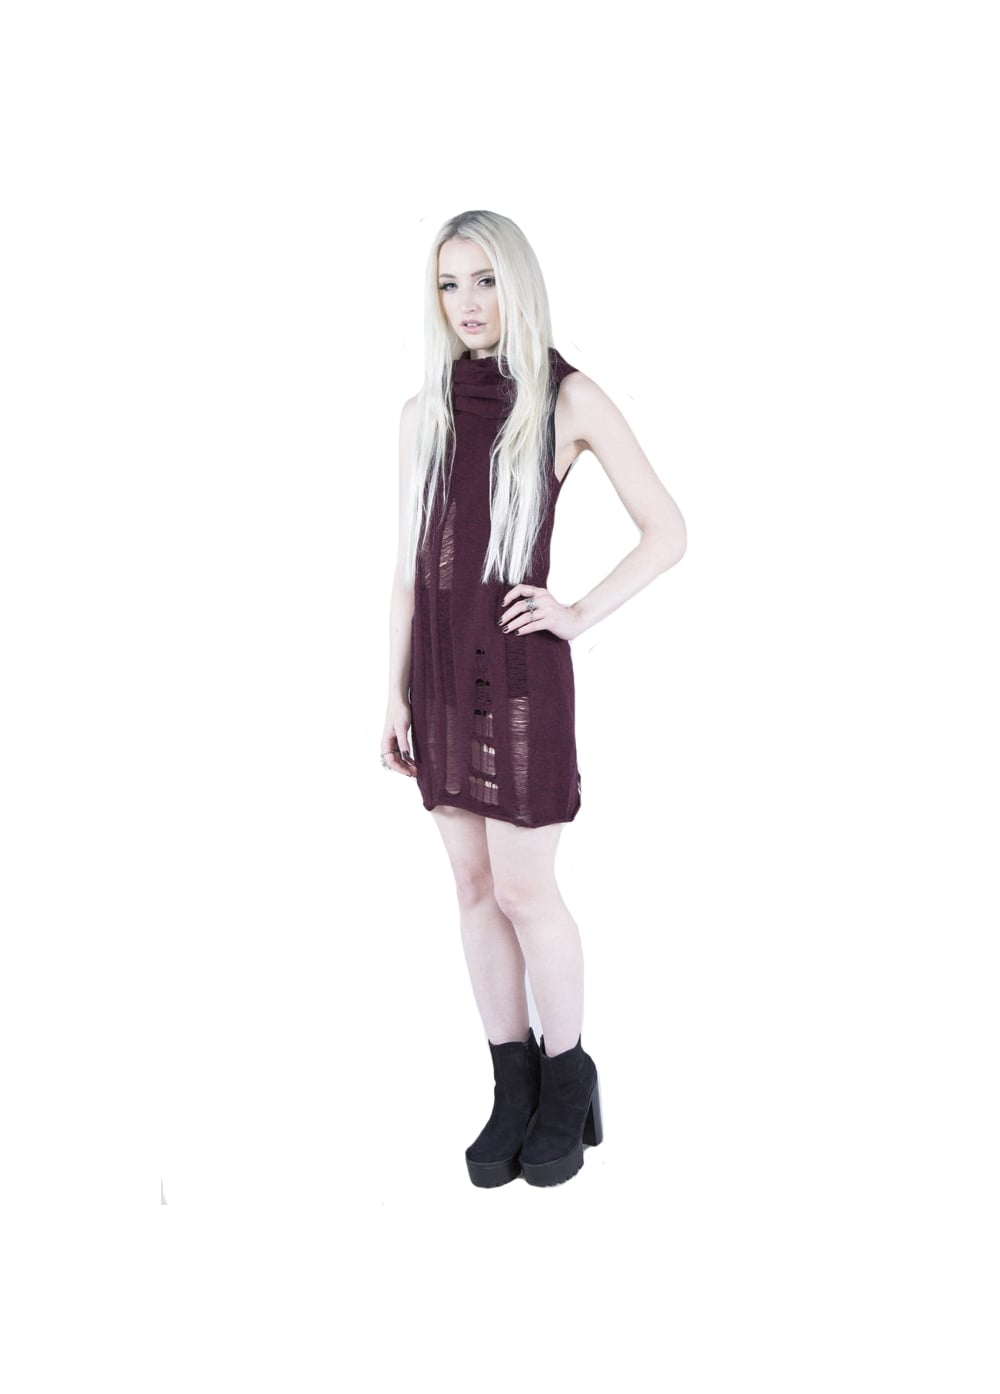 Burgundy Propaganda Sleeveless Dress - Size: L